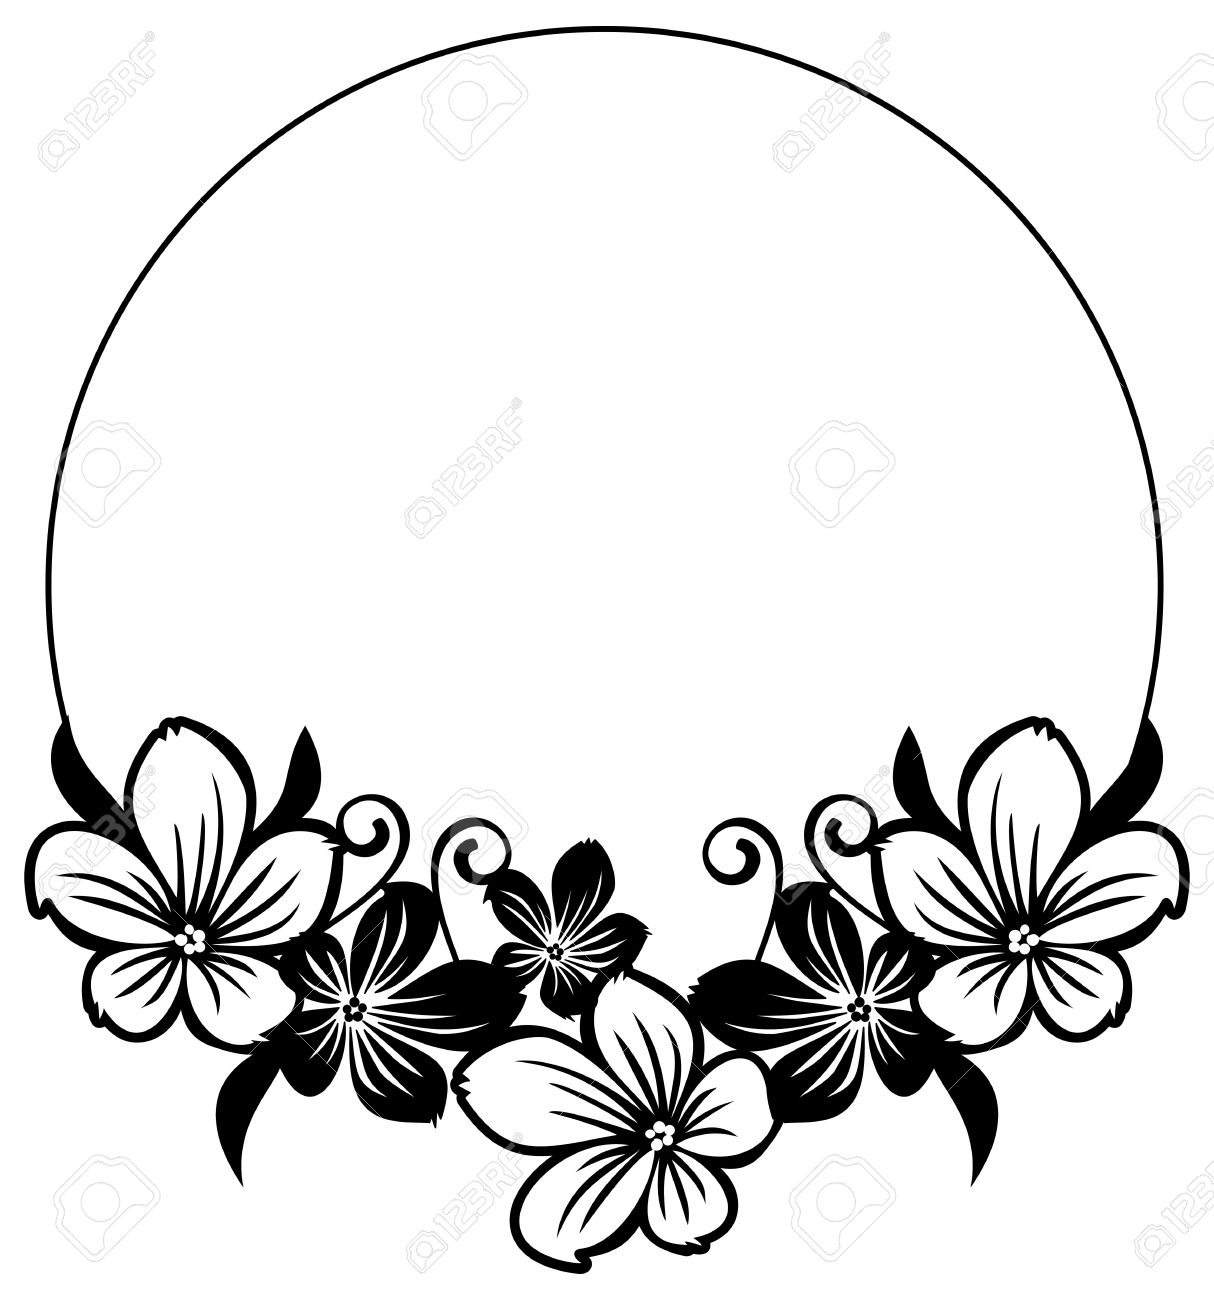 black and white round frame with abstract flowers silhouettes rh 123rf com flowers clipart black and white images flowers clipart black and white vector